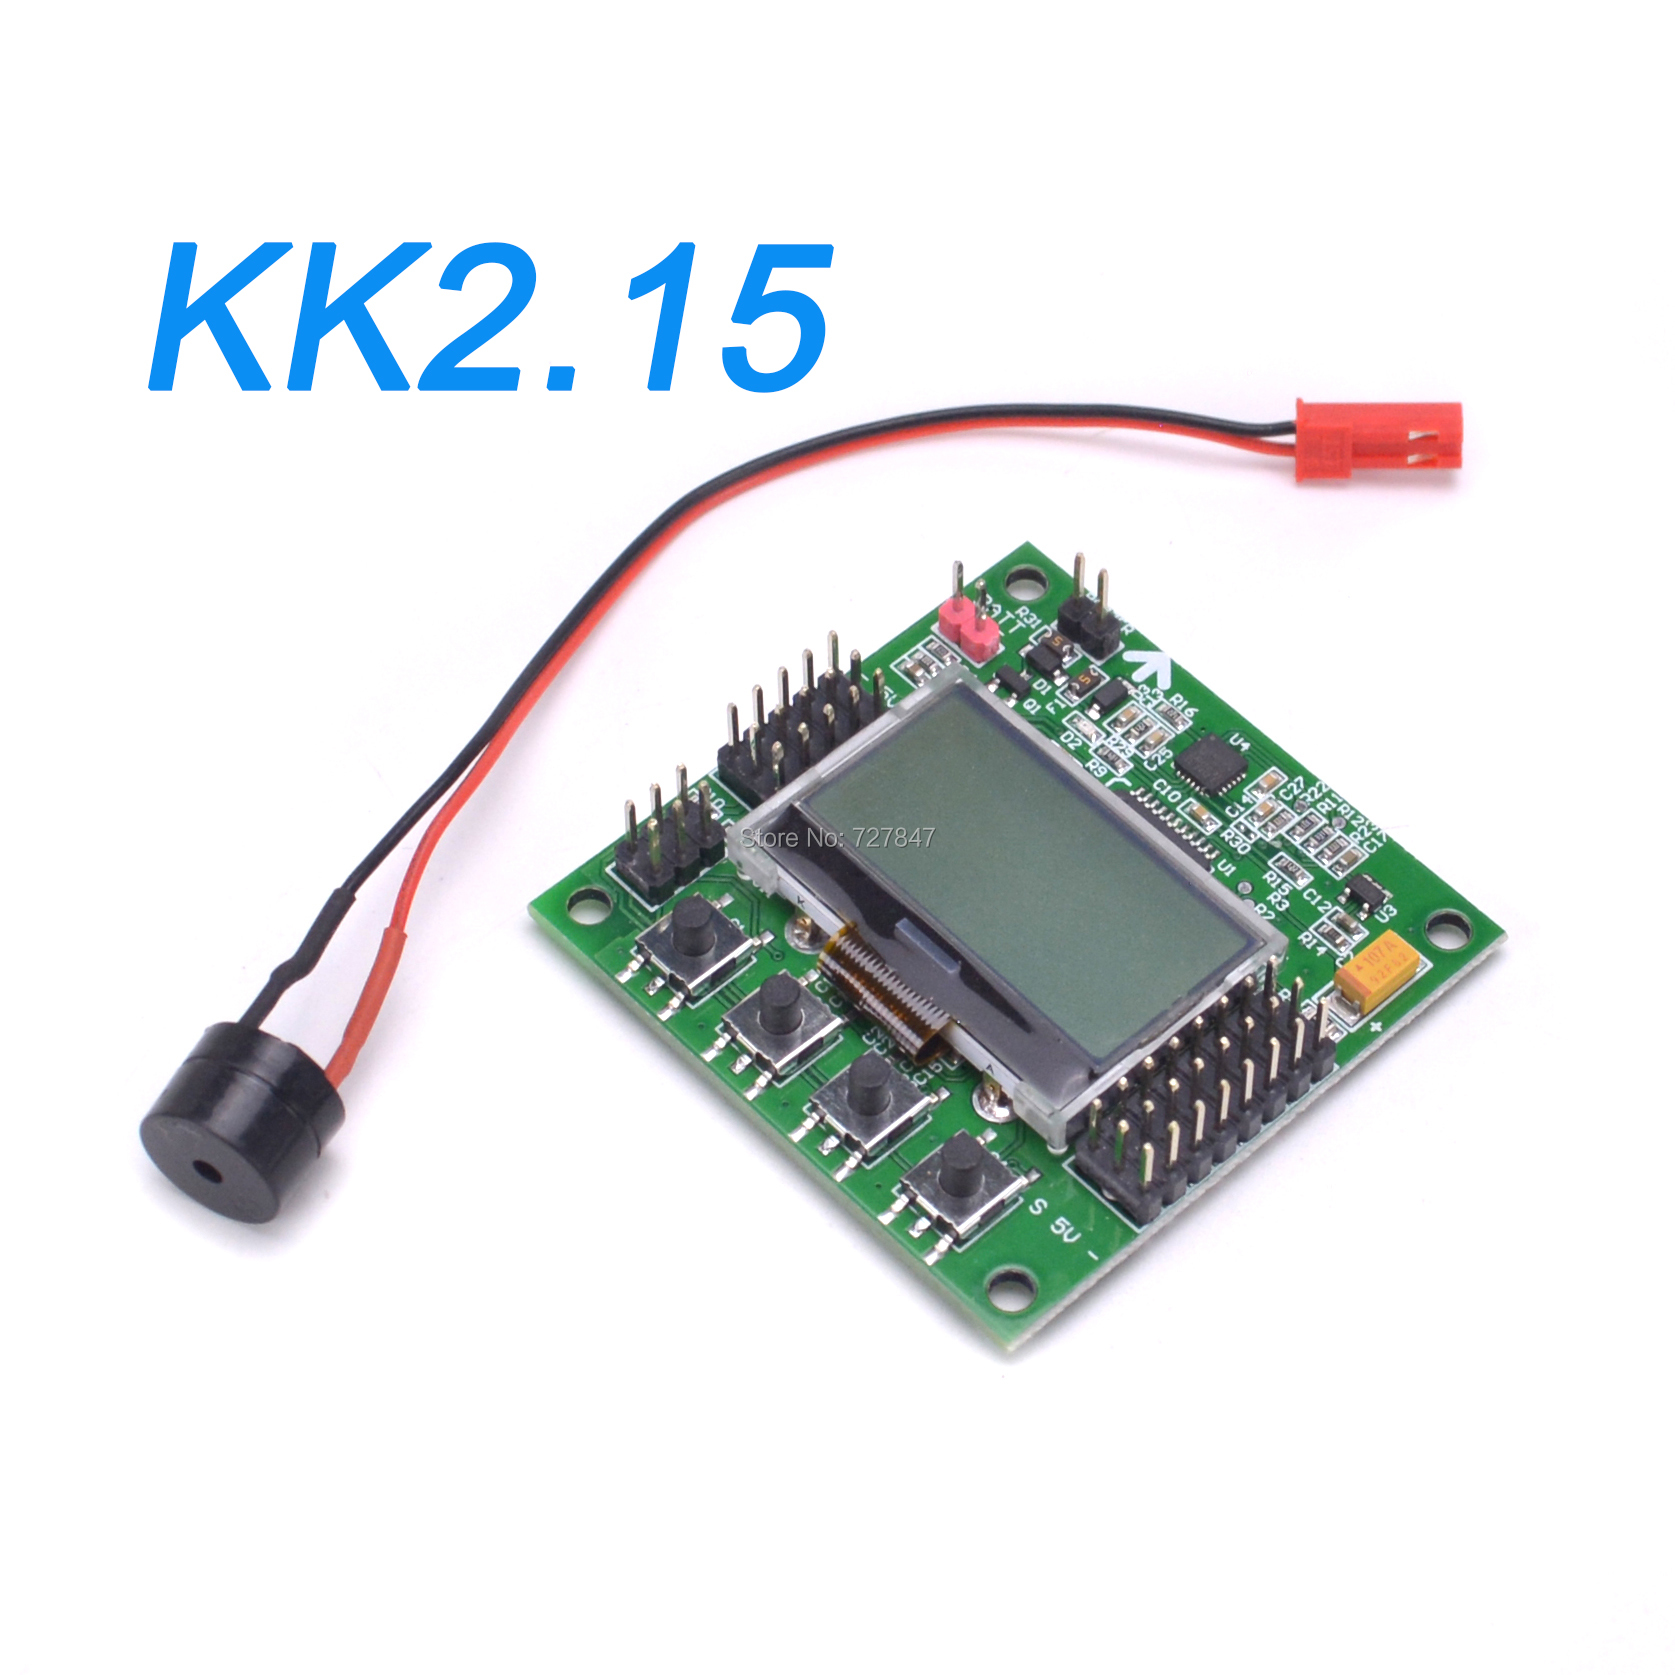 hight resolution of kk 2 1 5 kk2 15 lcd multirotor flight control board kk2 1 5 for quadcopter kk2 6050mpu 644pa f450 f550 s500